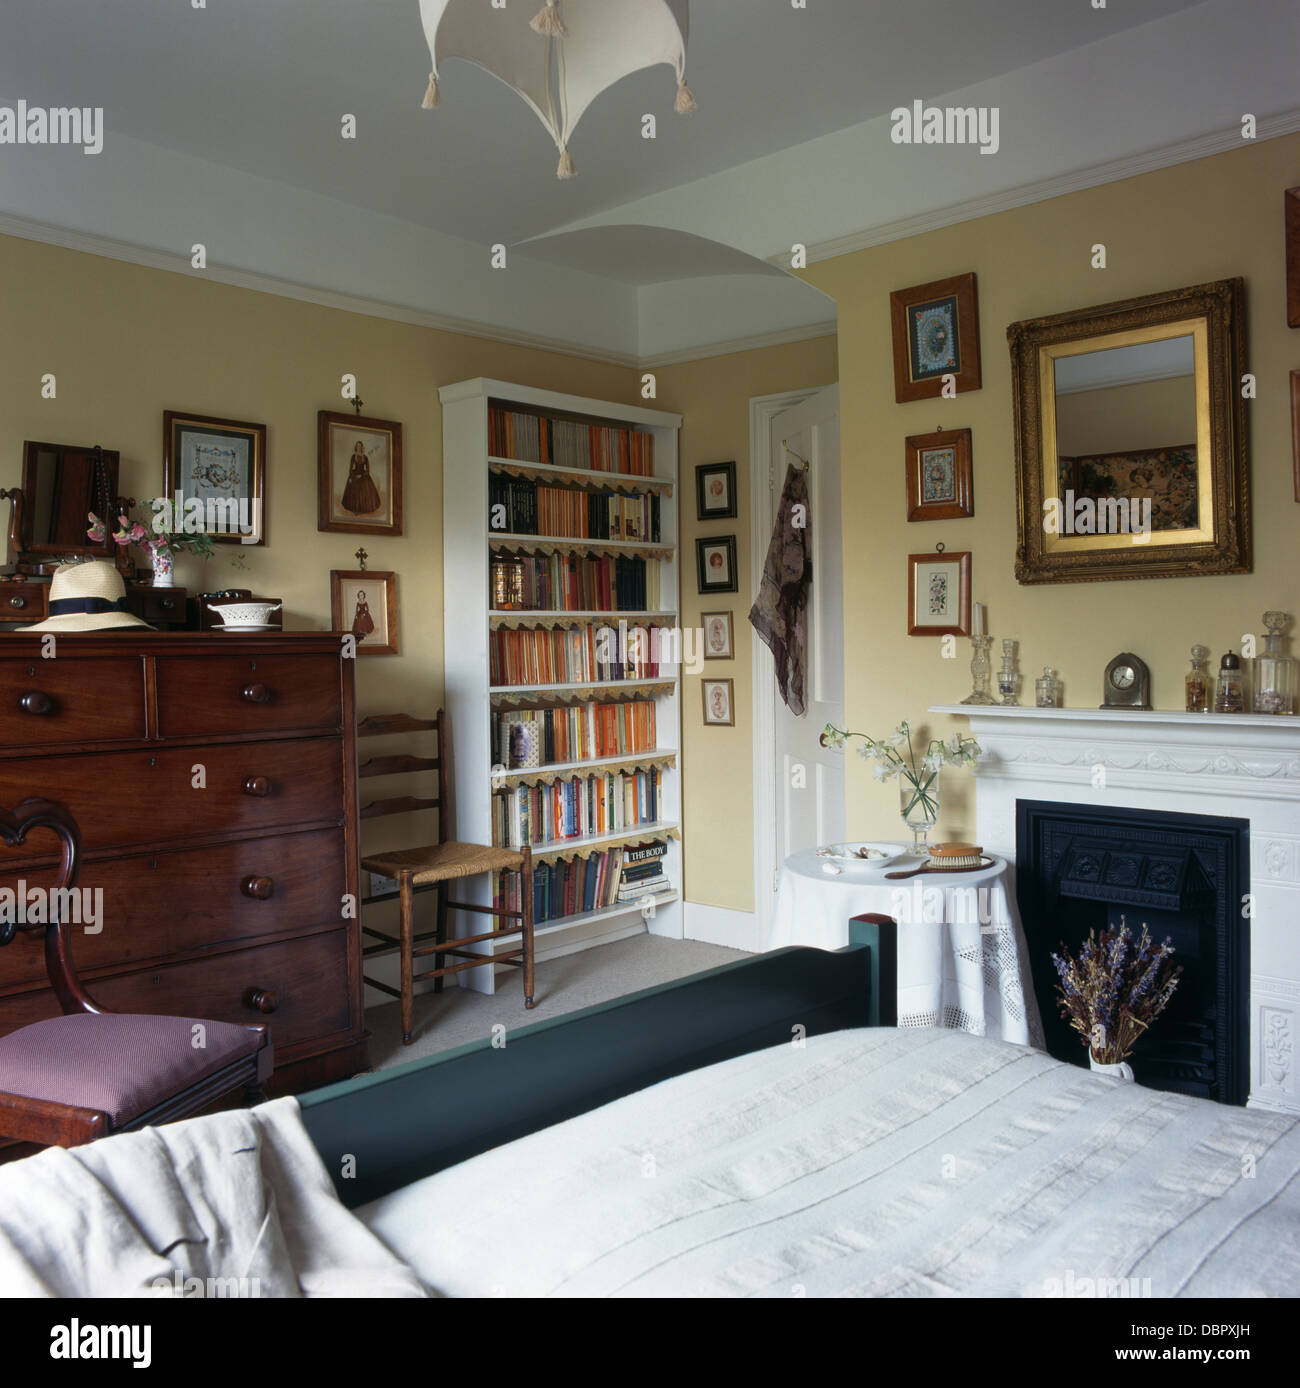 Freestanding White Bookshelves And Antique Chest Of Drawers In Townhouse  Bedroom With Mirror Above Fireplace